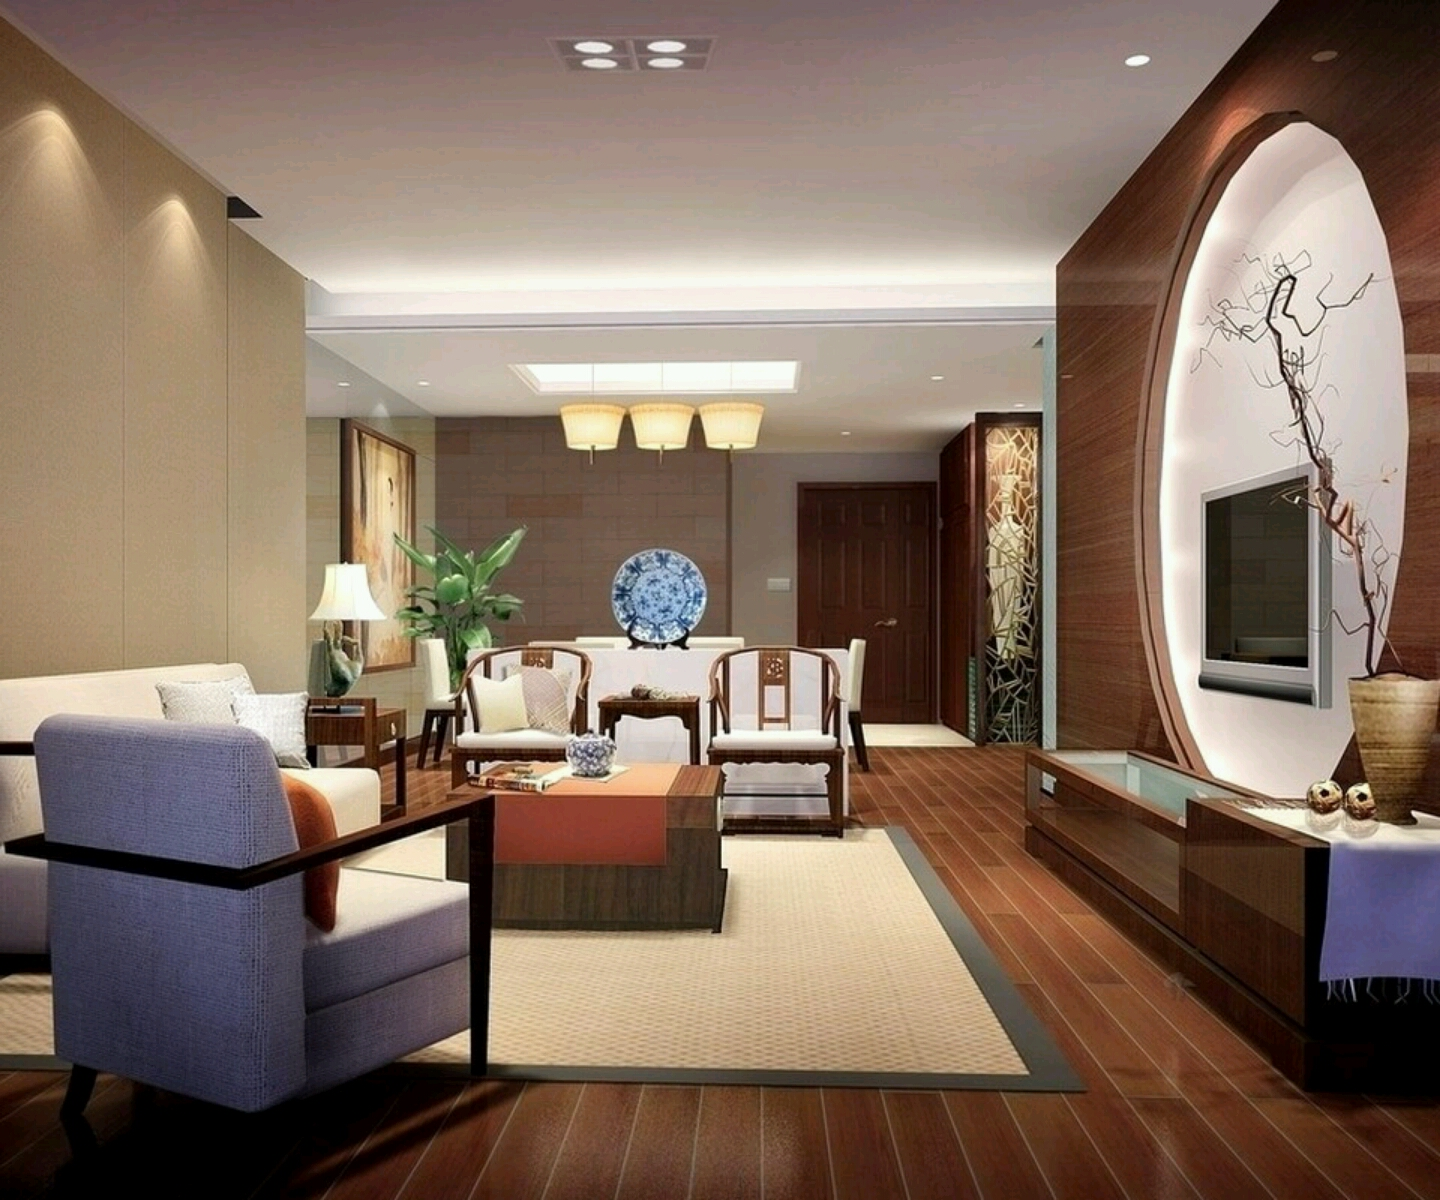 Luxury homes interior decoration living room designs ideas for Decoration ideas living room